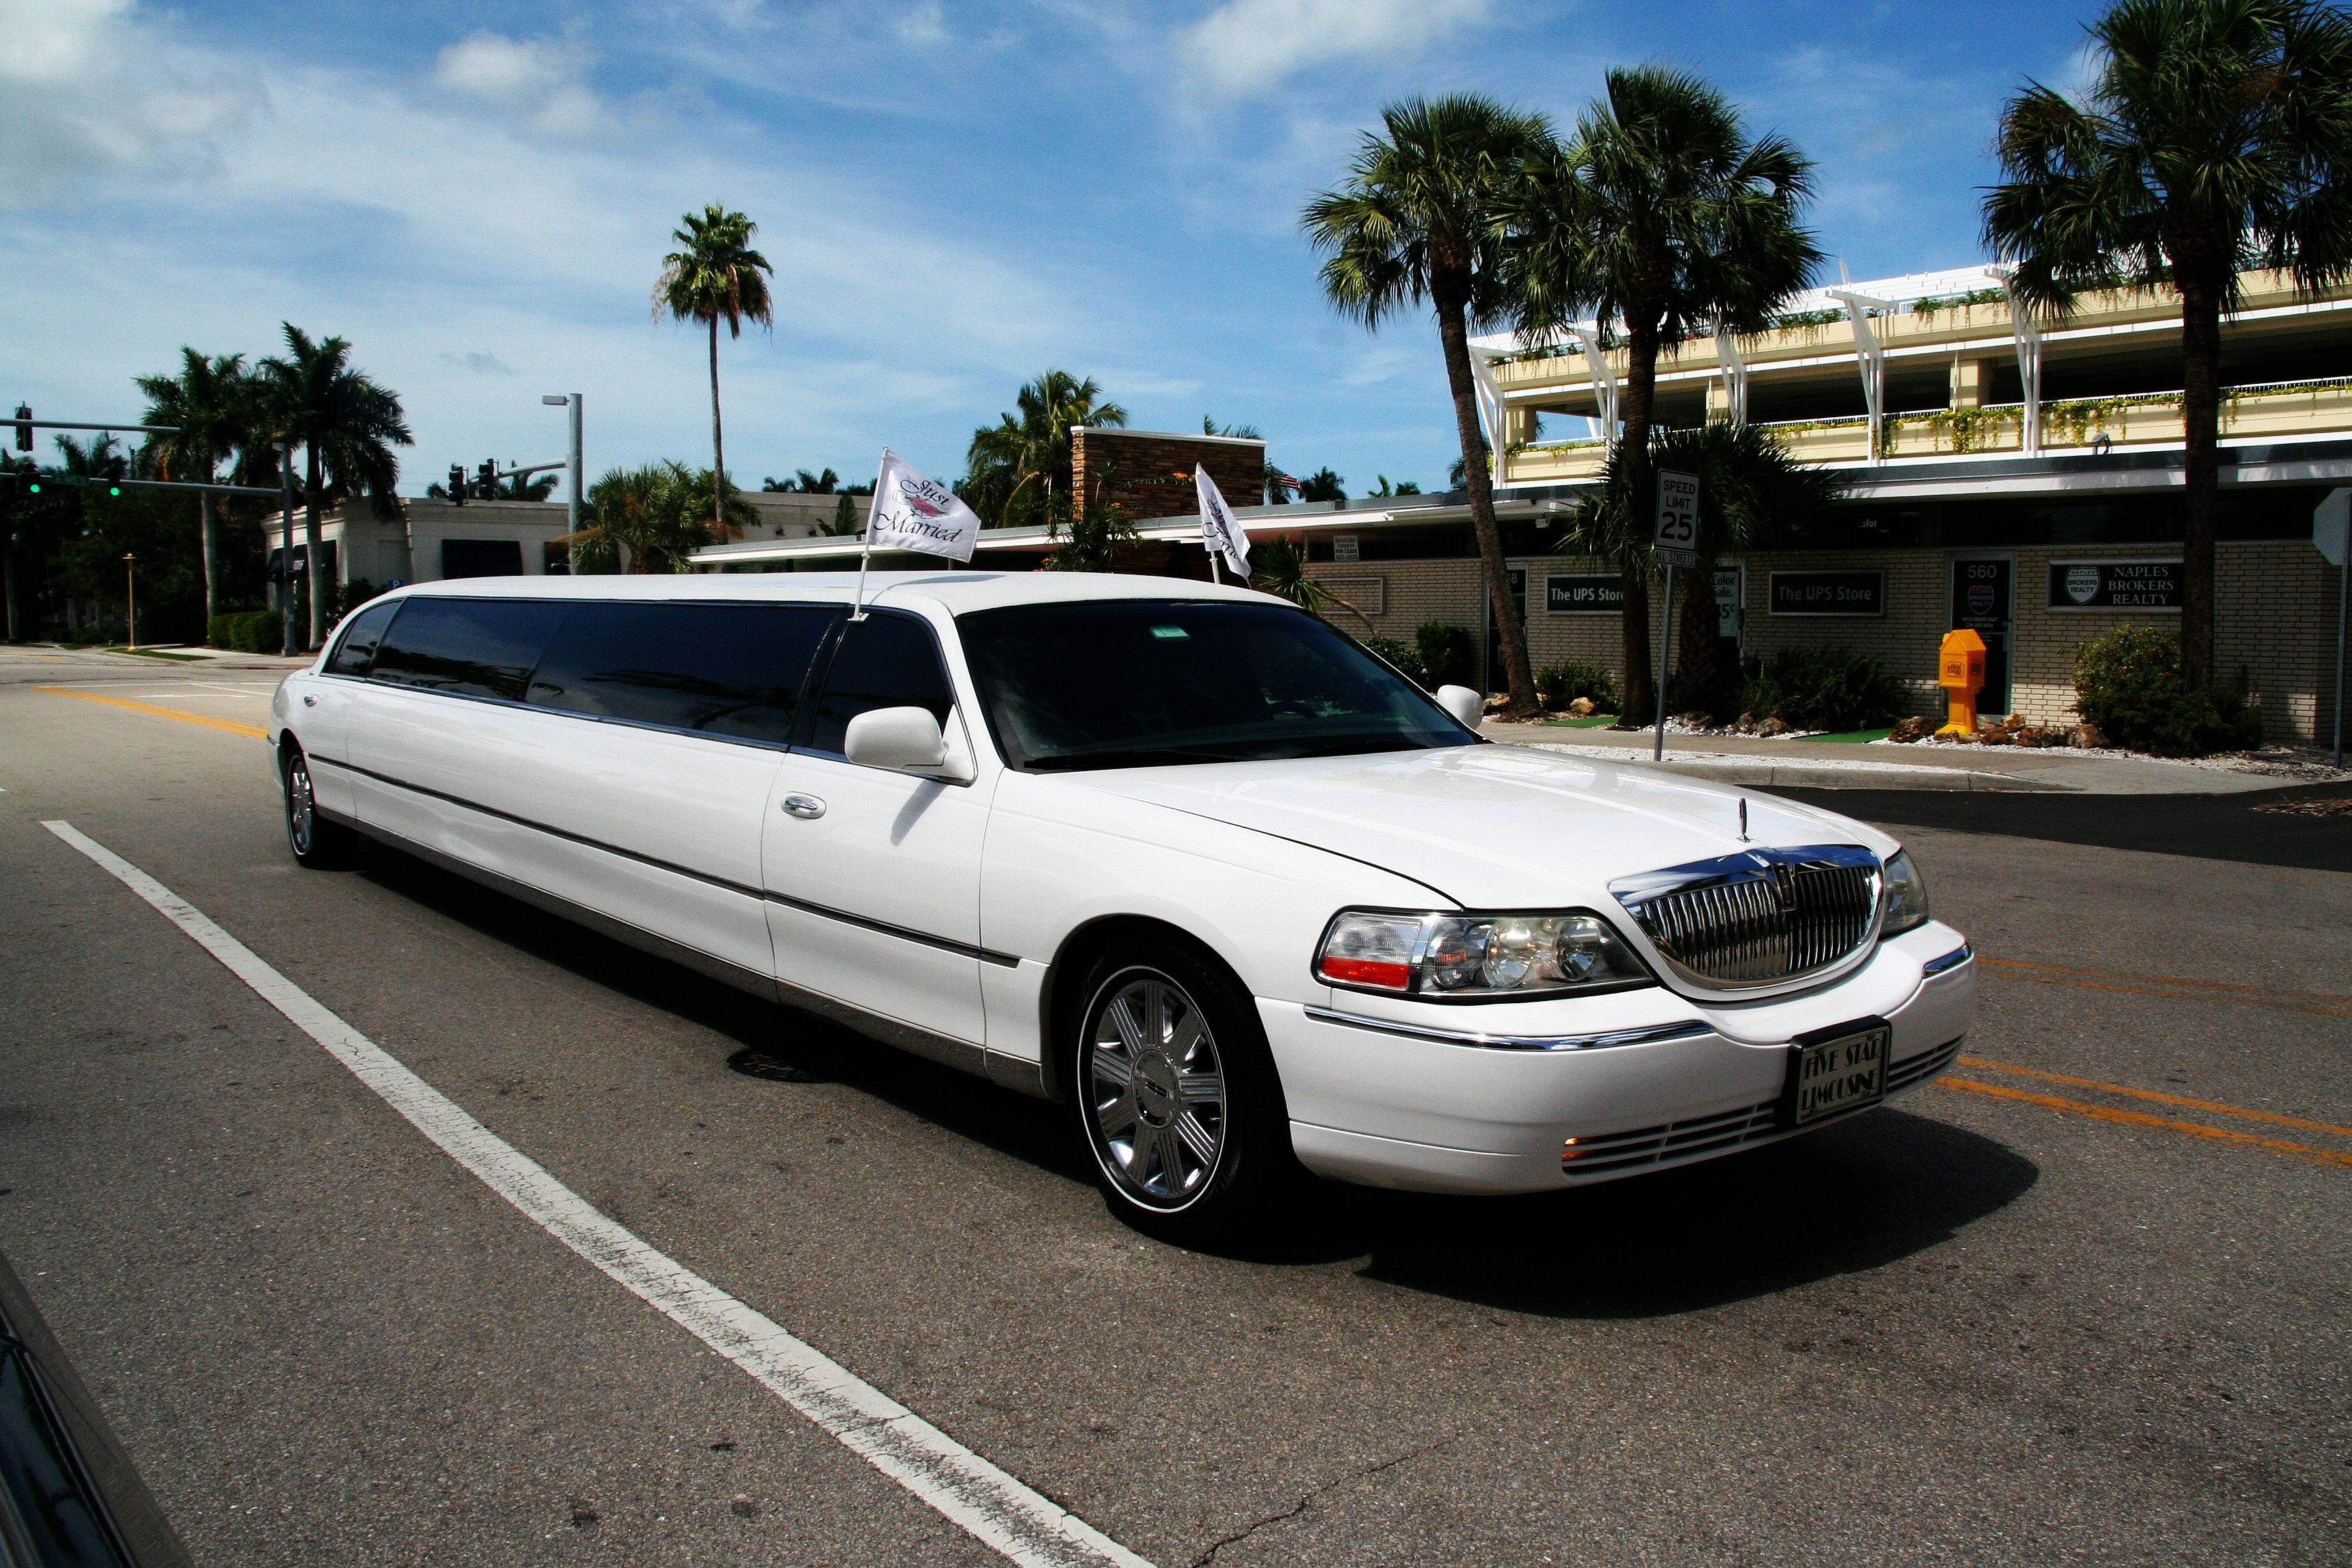 Chauffeurs- The Most Important Part of The Limousine Services